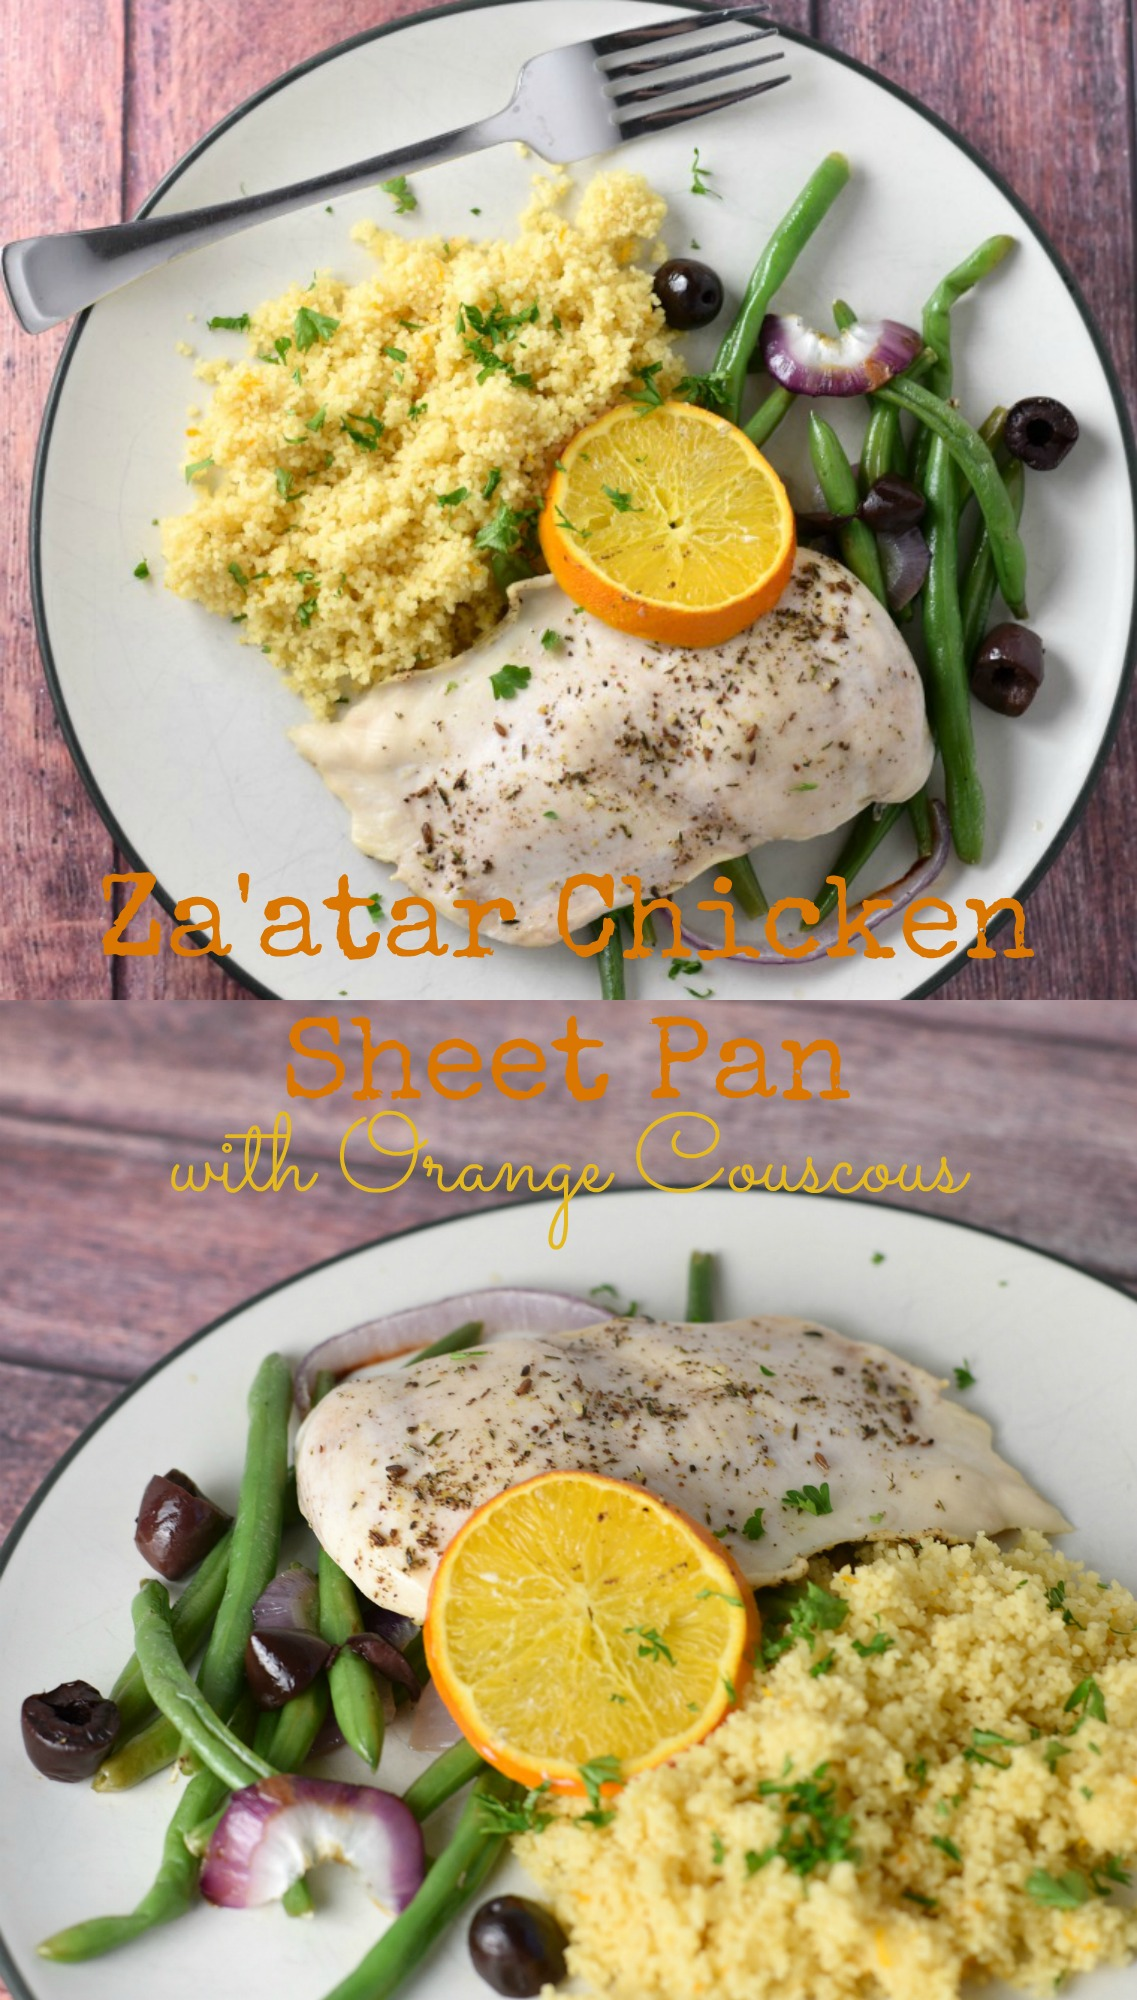 Za'atar Chicken Sheet Pan is an easy and flavorful recipe that is ready in under 30 minutes! Served with an orange flavored whole wheat couscous, its a healthy meal the family will love!